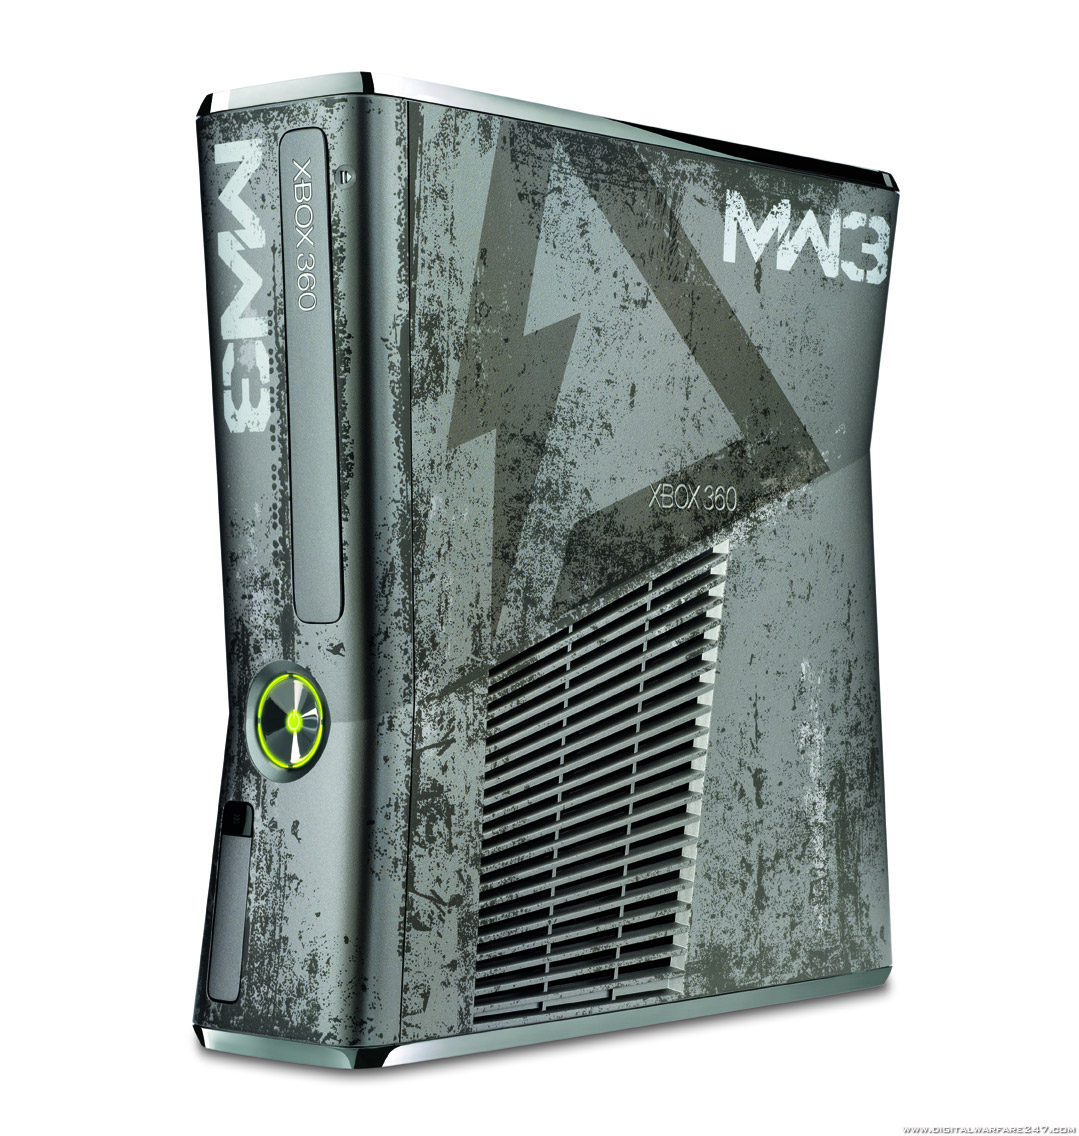 http://rozup.ir/up/gamehouse/Pictures/mw3-xbox-console-04.jpg